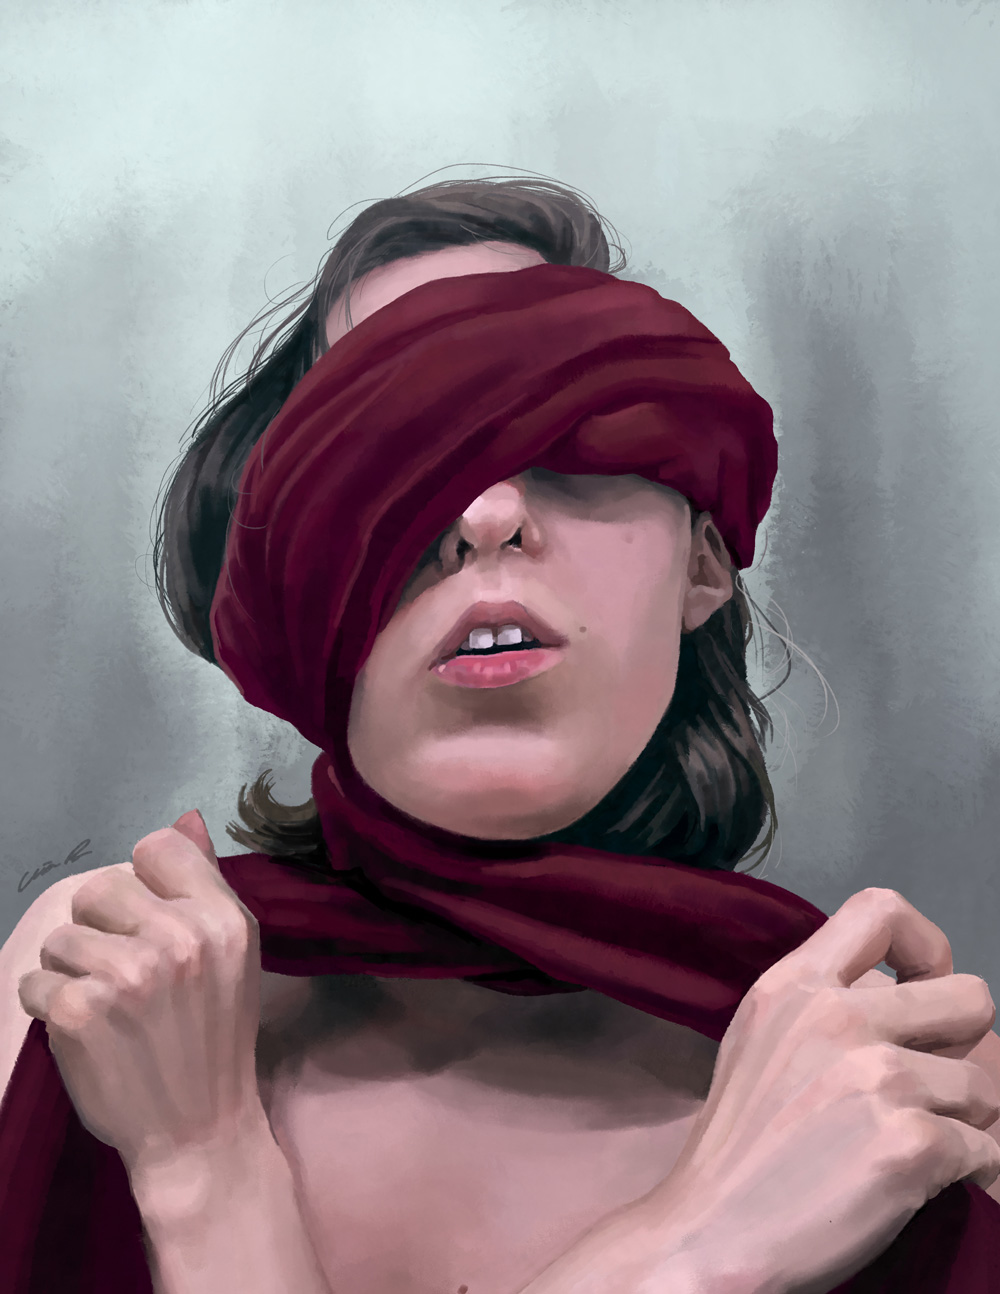 Self-portrait, chest up. Red fabric is wrapped around my eyes and neck.